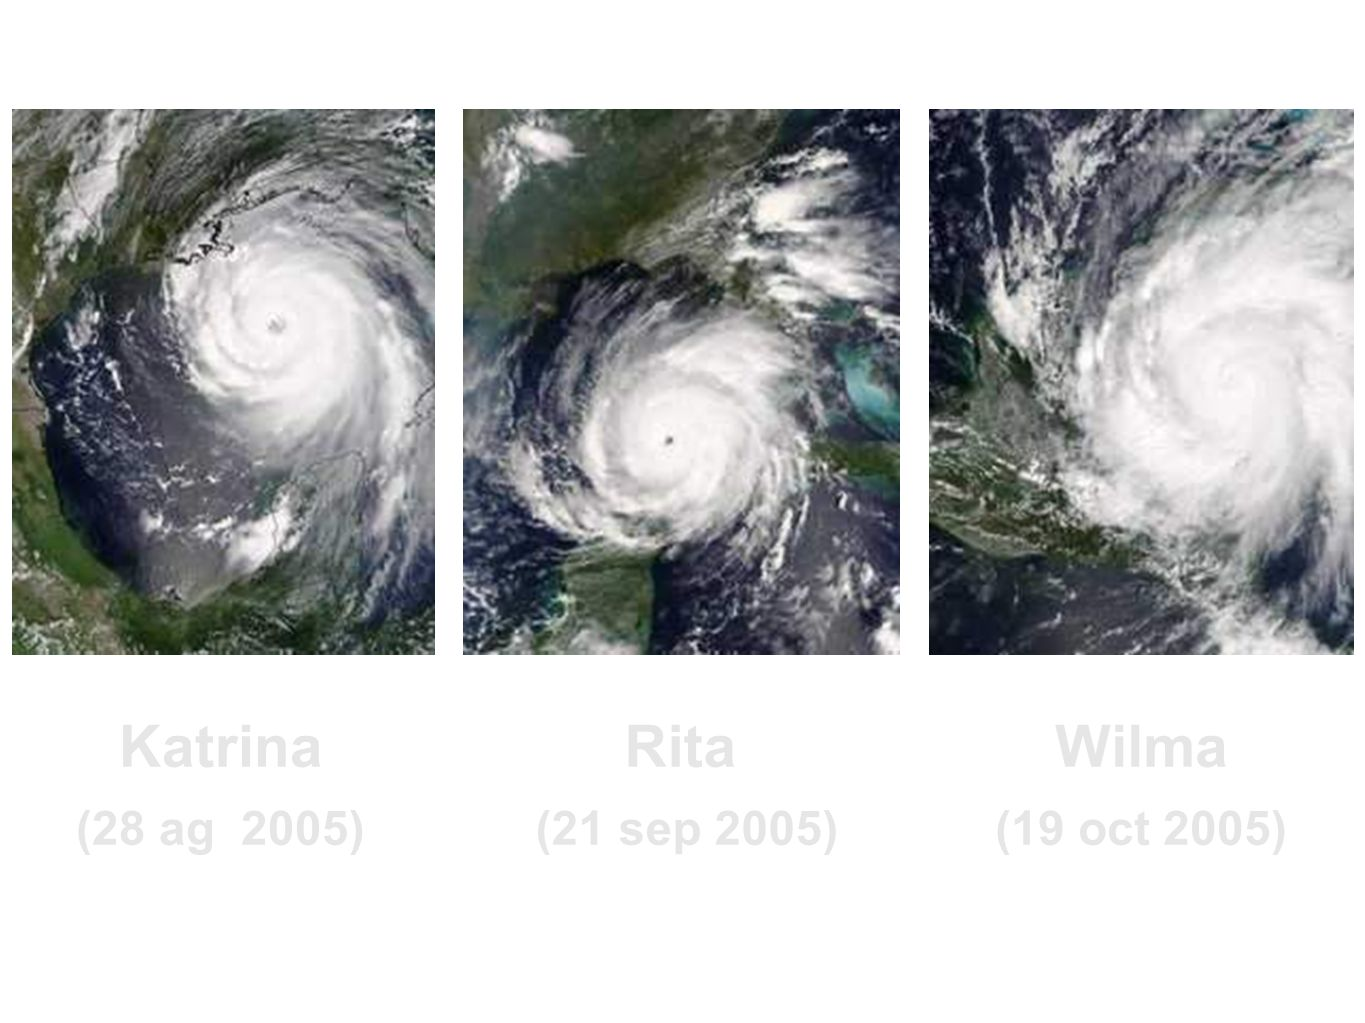 Katrina (28 ag 2005)‏ Rita (21 sep 2005)‏ Wilma (19 oct 2005)‏ 18